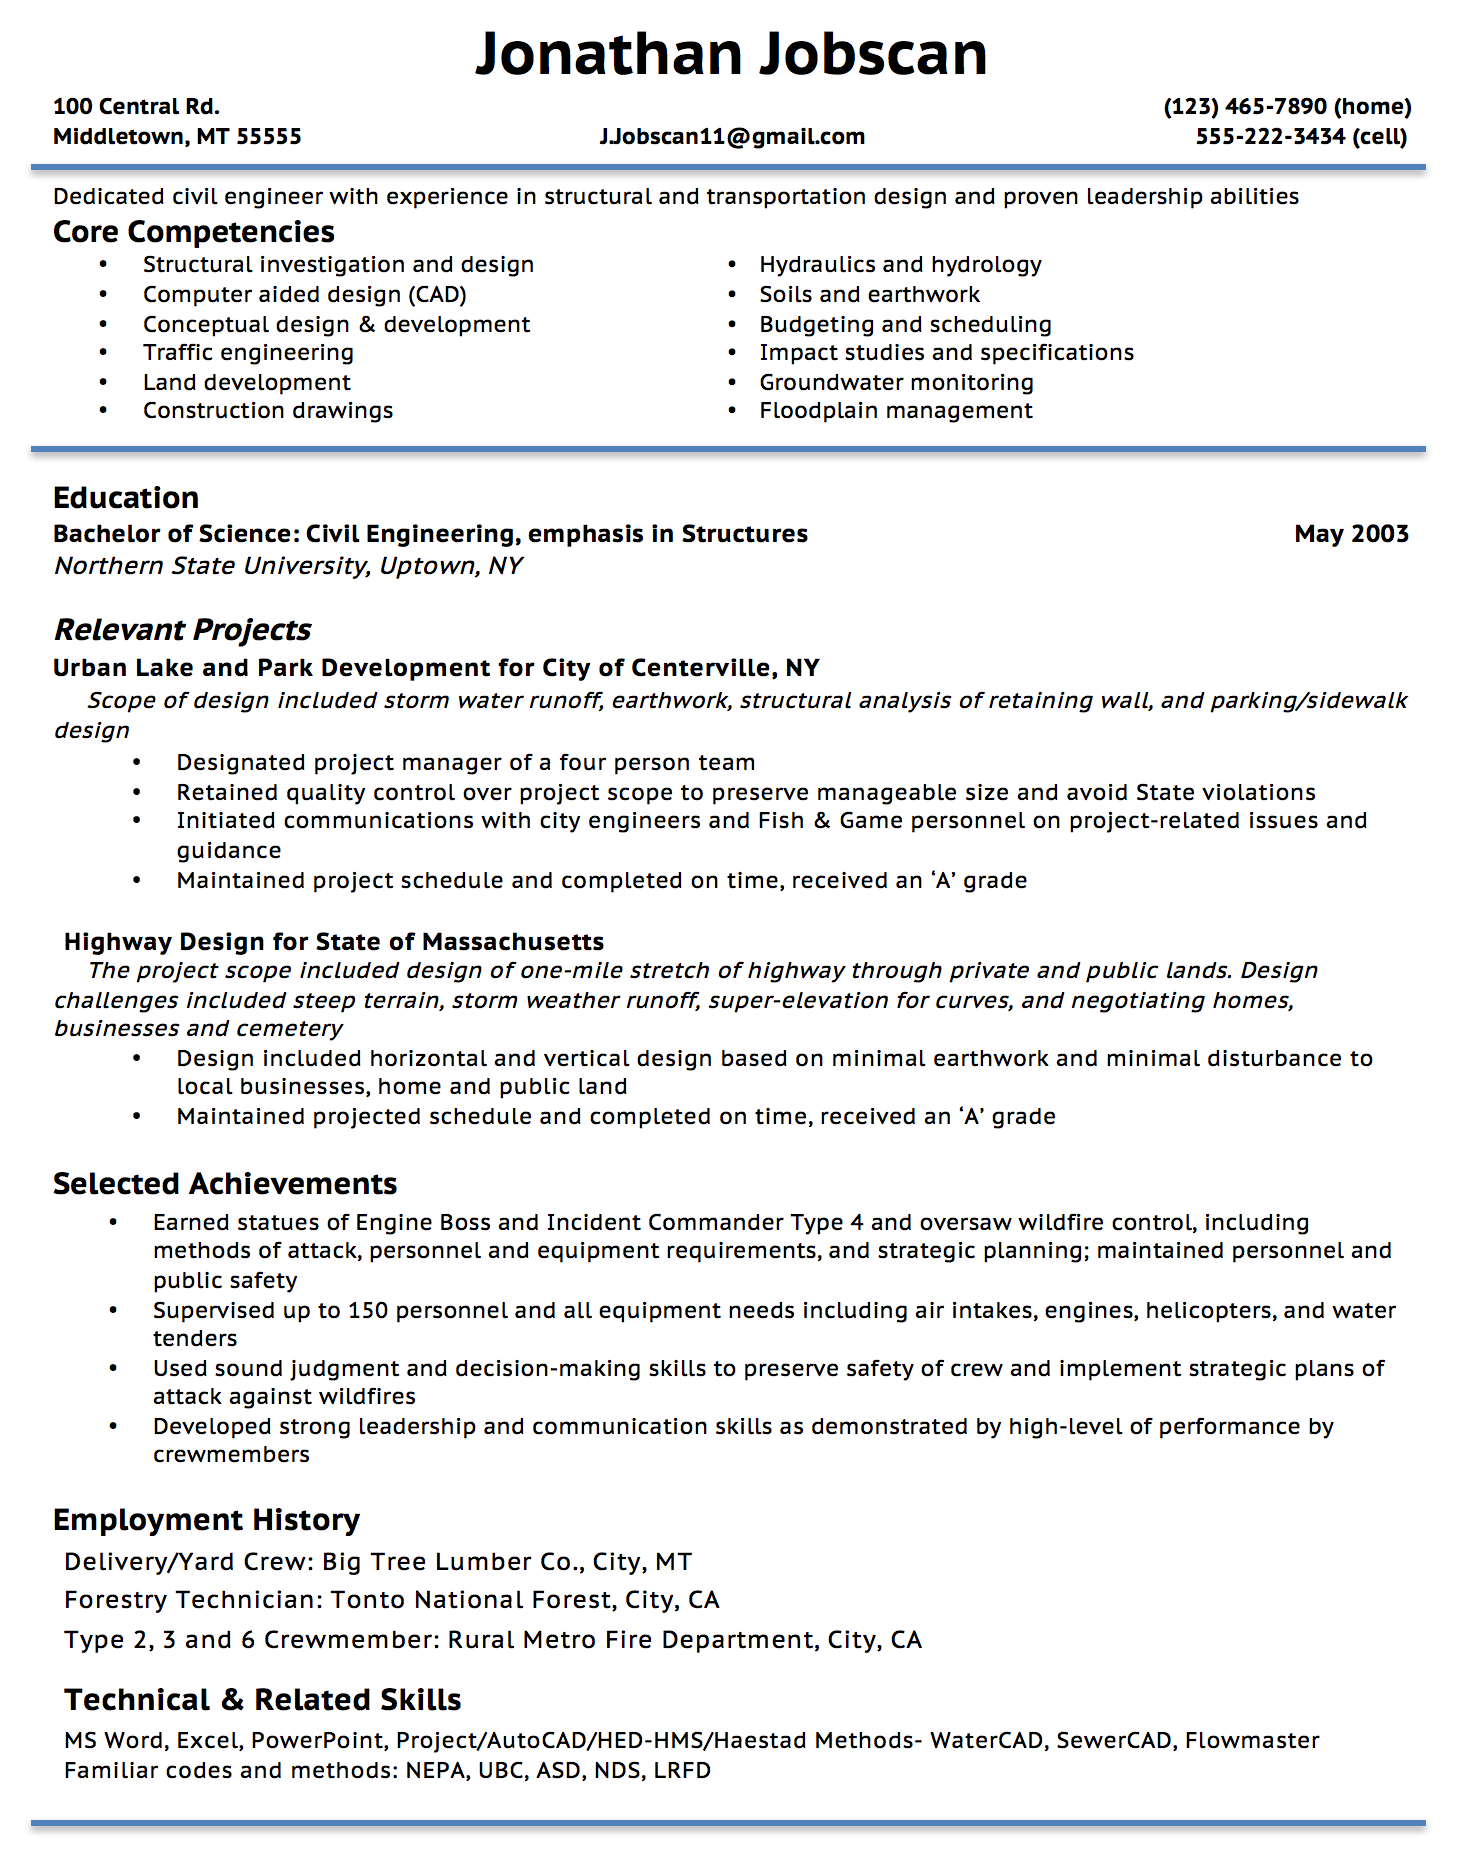 Opposenewapstandardsus  Ravishing Resume Writing Guide  Jobscan With Handsome Example Of A Functional Resume Format With Nice Ta Resume Also Food Resume In Addition Scholarship Resume Format And Football Coaching Resume As Well As Resume Templates For Wordpad Additionally Computer Literate Resume From Jobscanco With Opposenewapstandardsus  Handsome Resume Writing Guide  Jobscan With Nice Example Of A Functional Resume Format And Ravishing Ta Resume Also Food Resume In Addition Scholarship Resume Format From Jobscanco